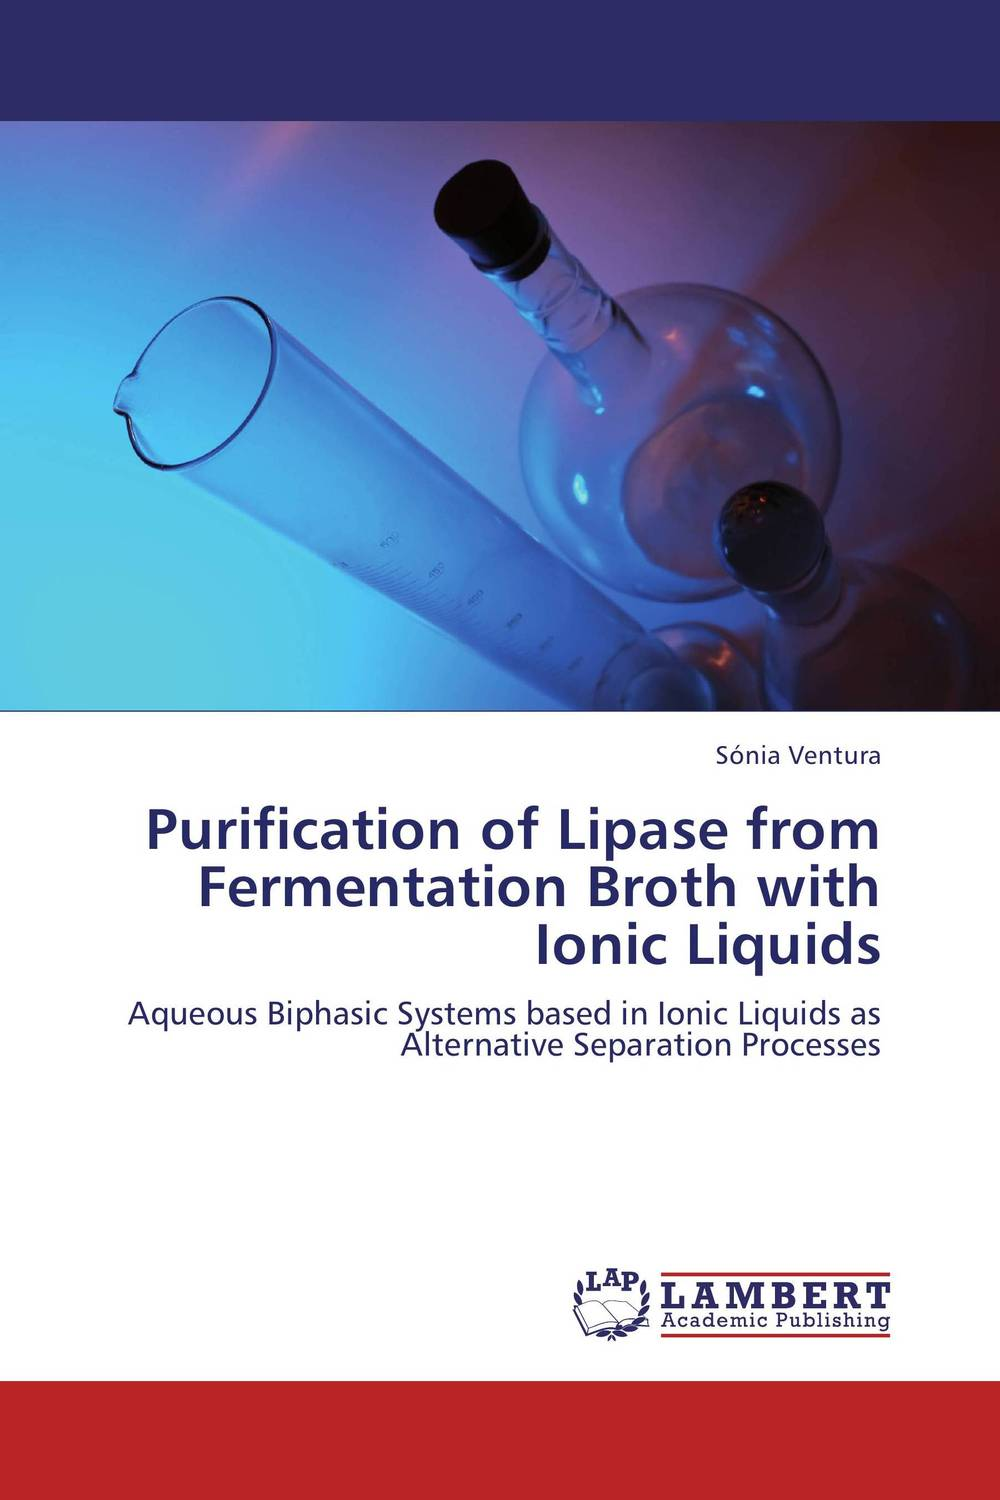 Purification of Lipase from Fermentation Broth with Ionic Liquids a novel separation technique using hydrotropes